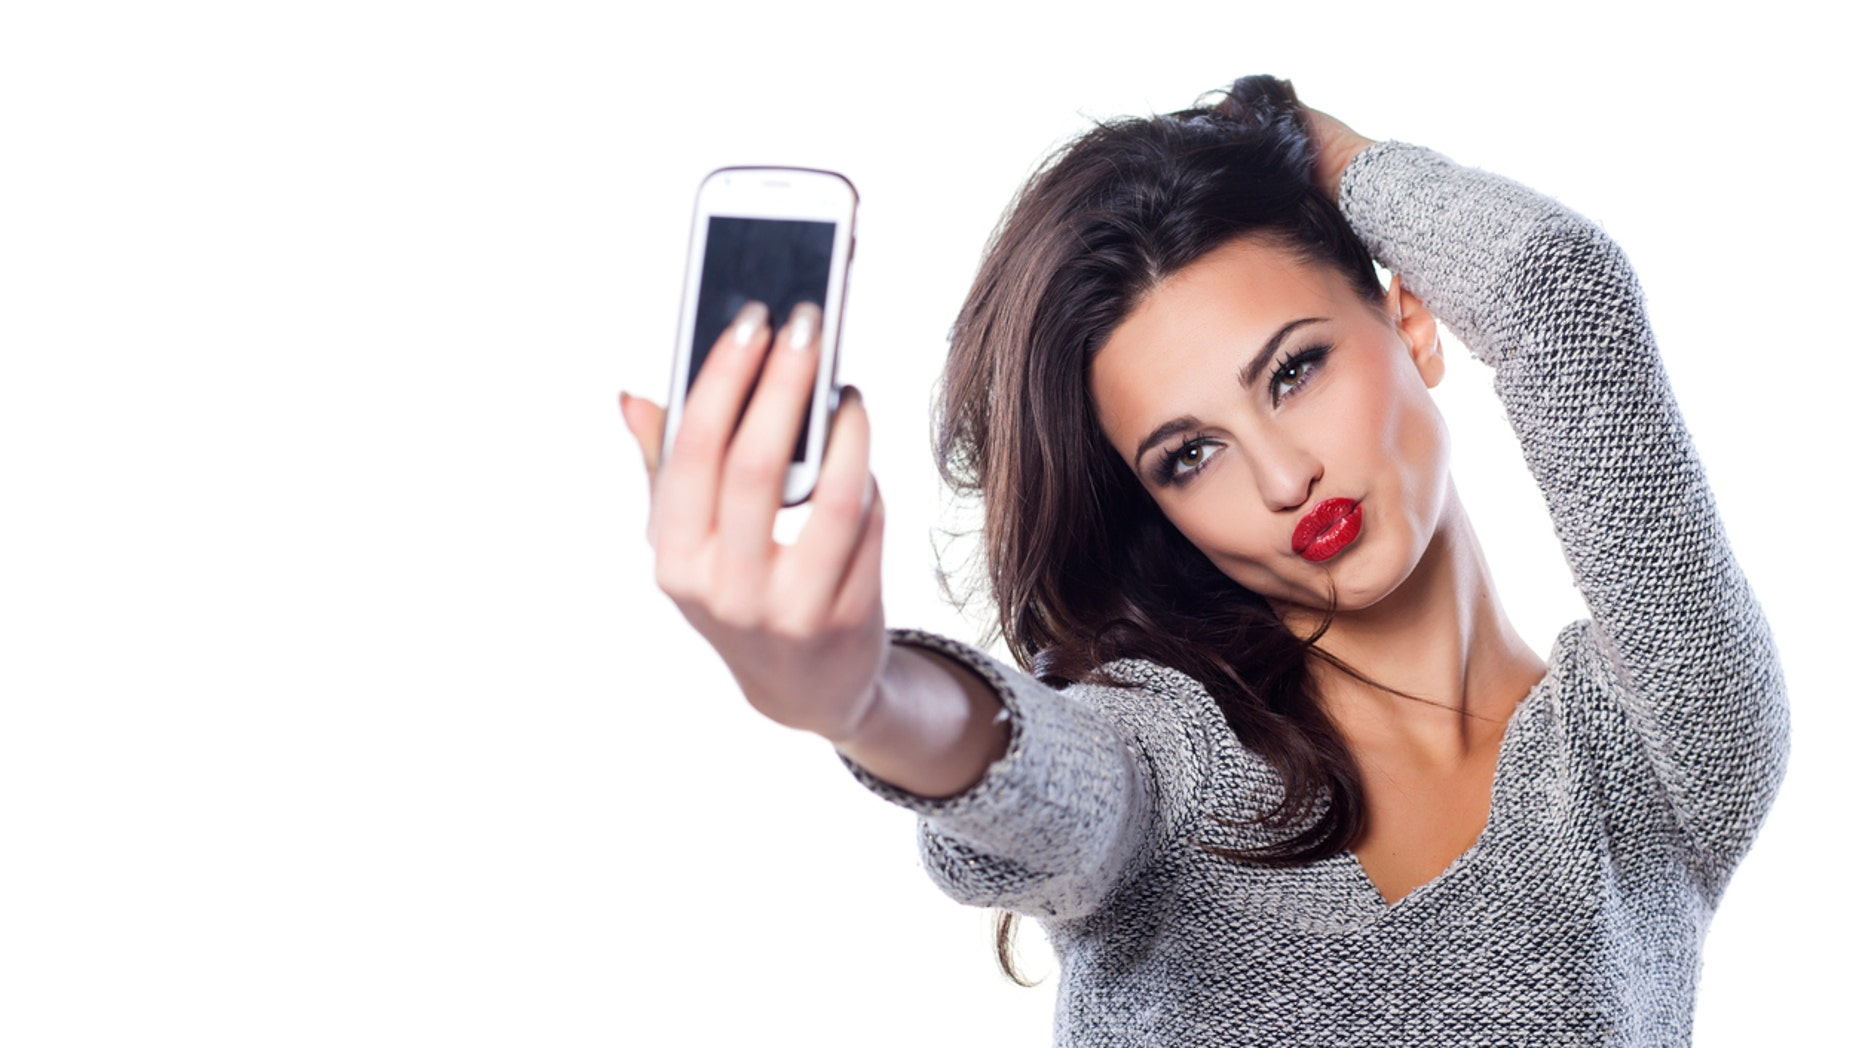 pretty girl make a duck face, and take a self portrait with her smart phone